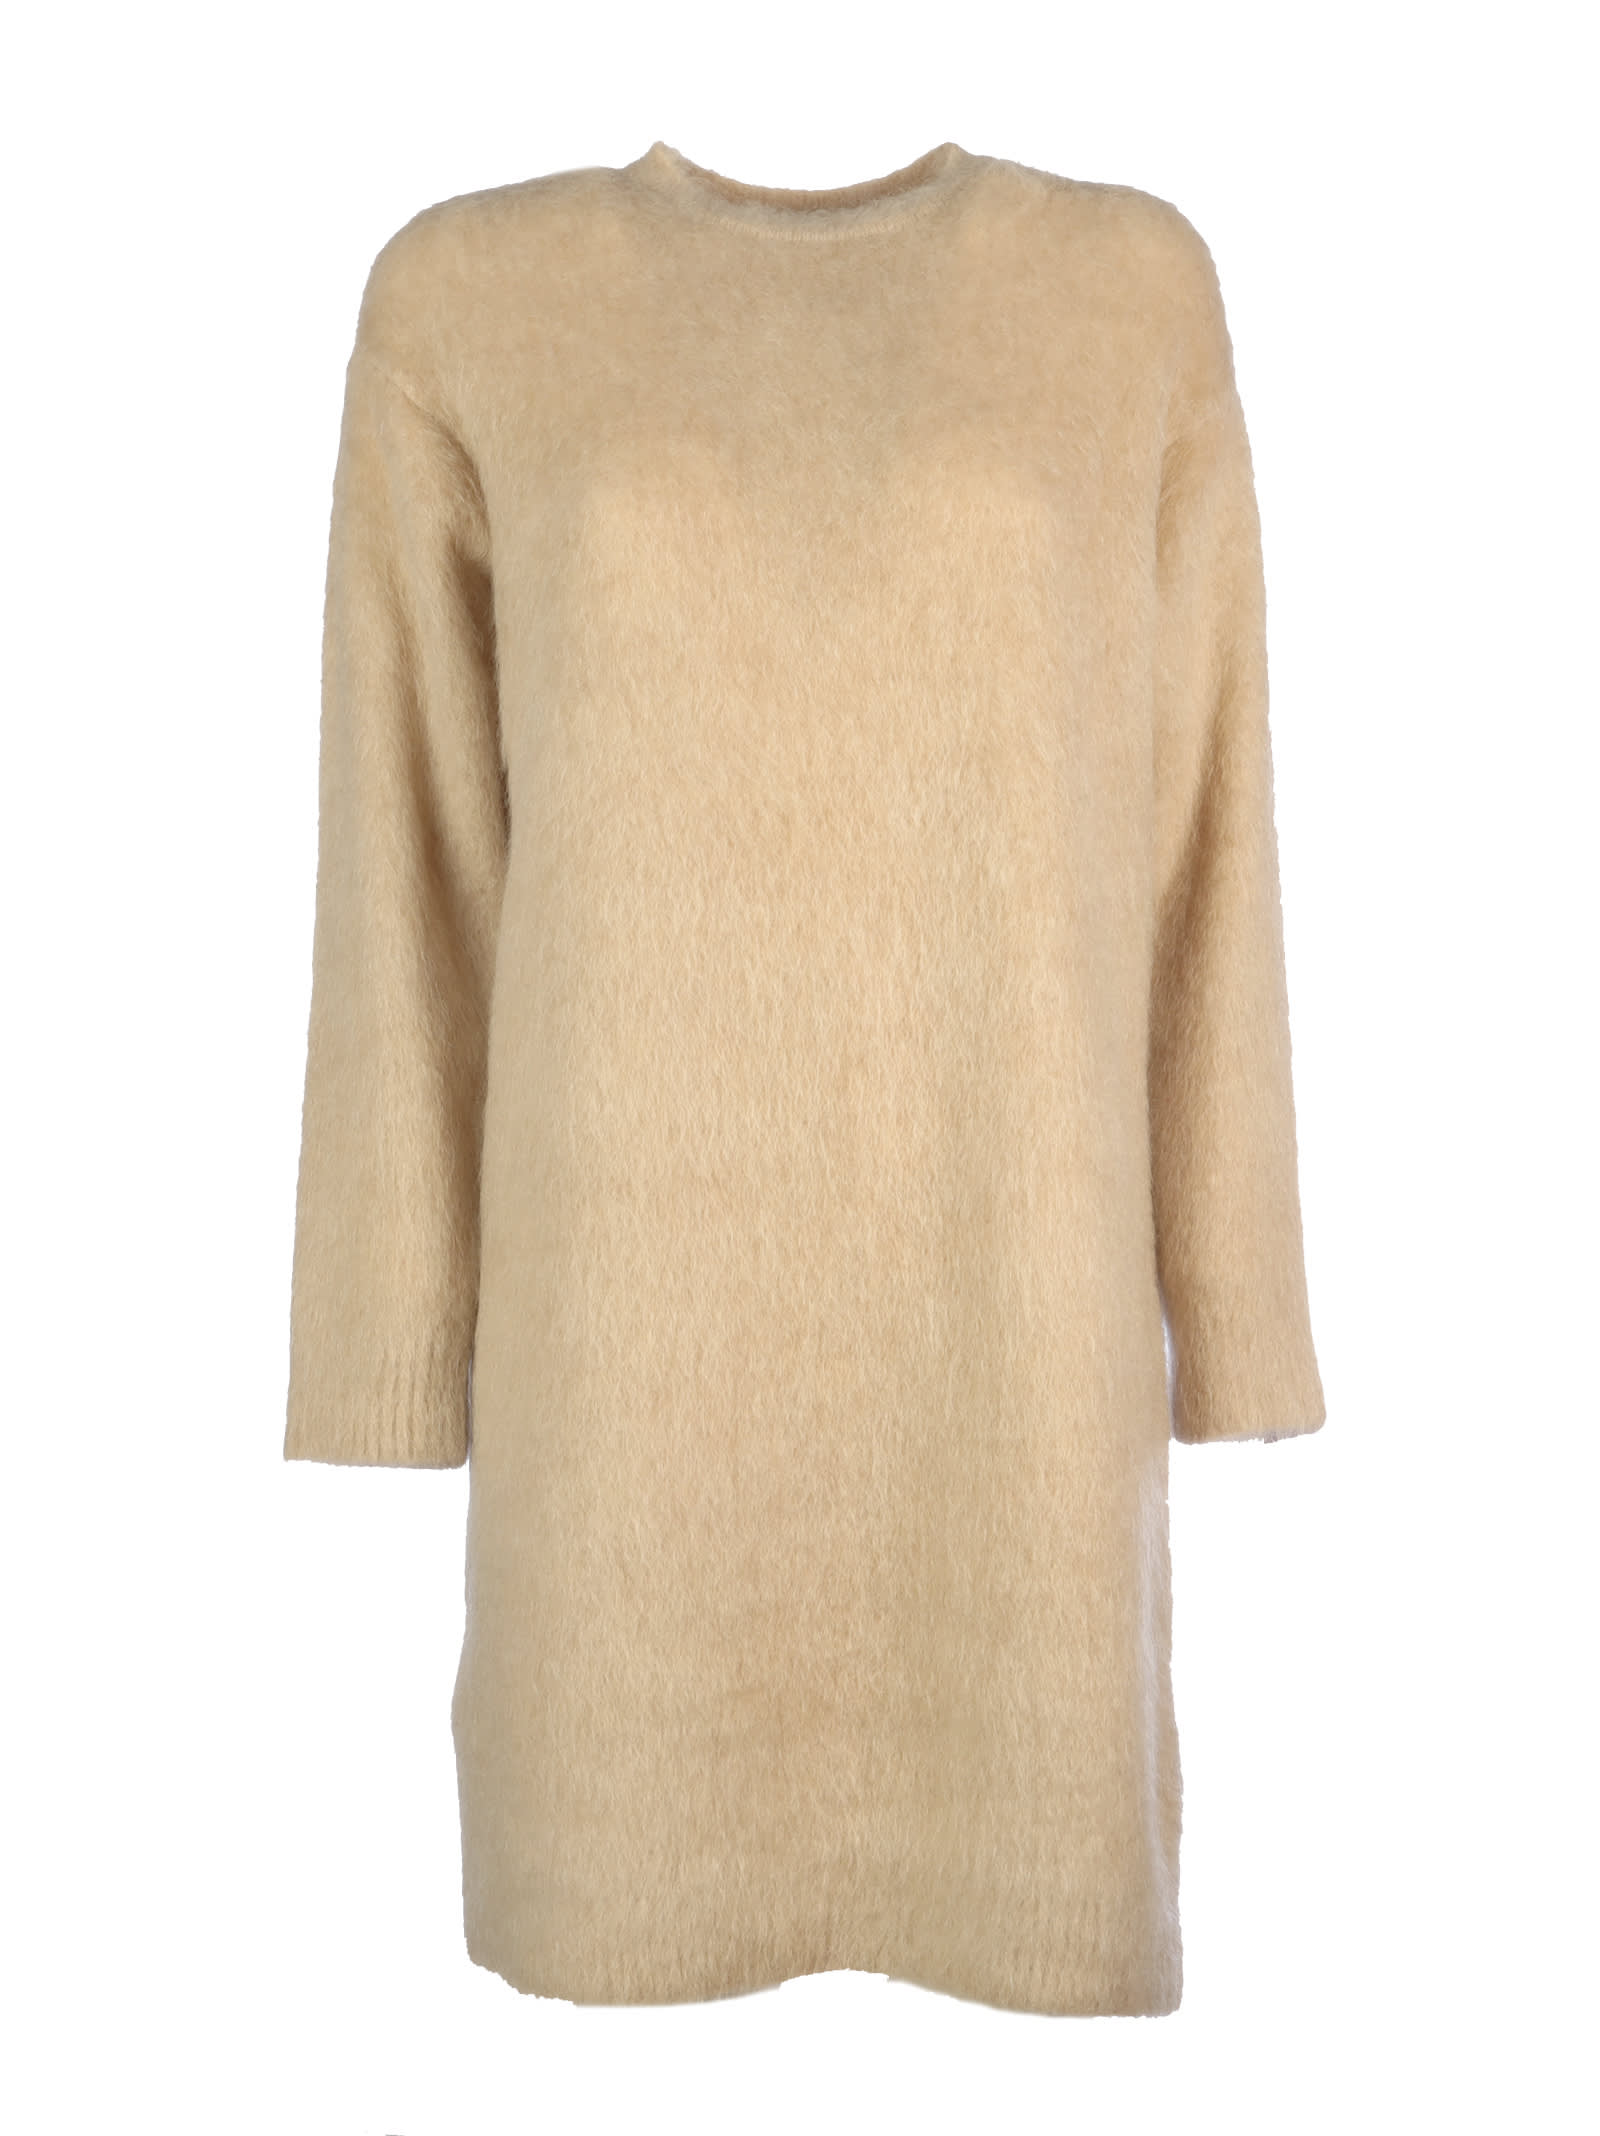 Max Mara Calte Wool Dress